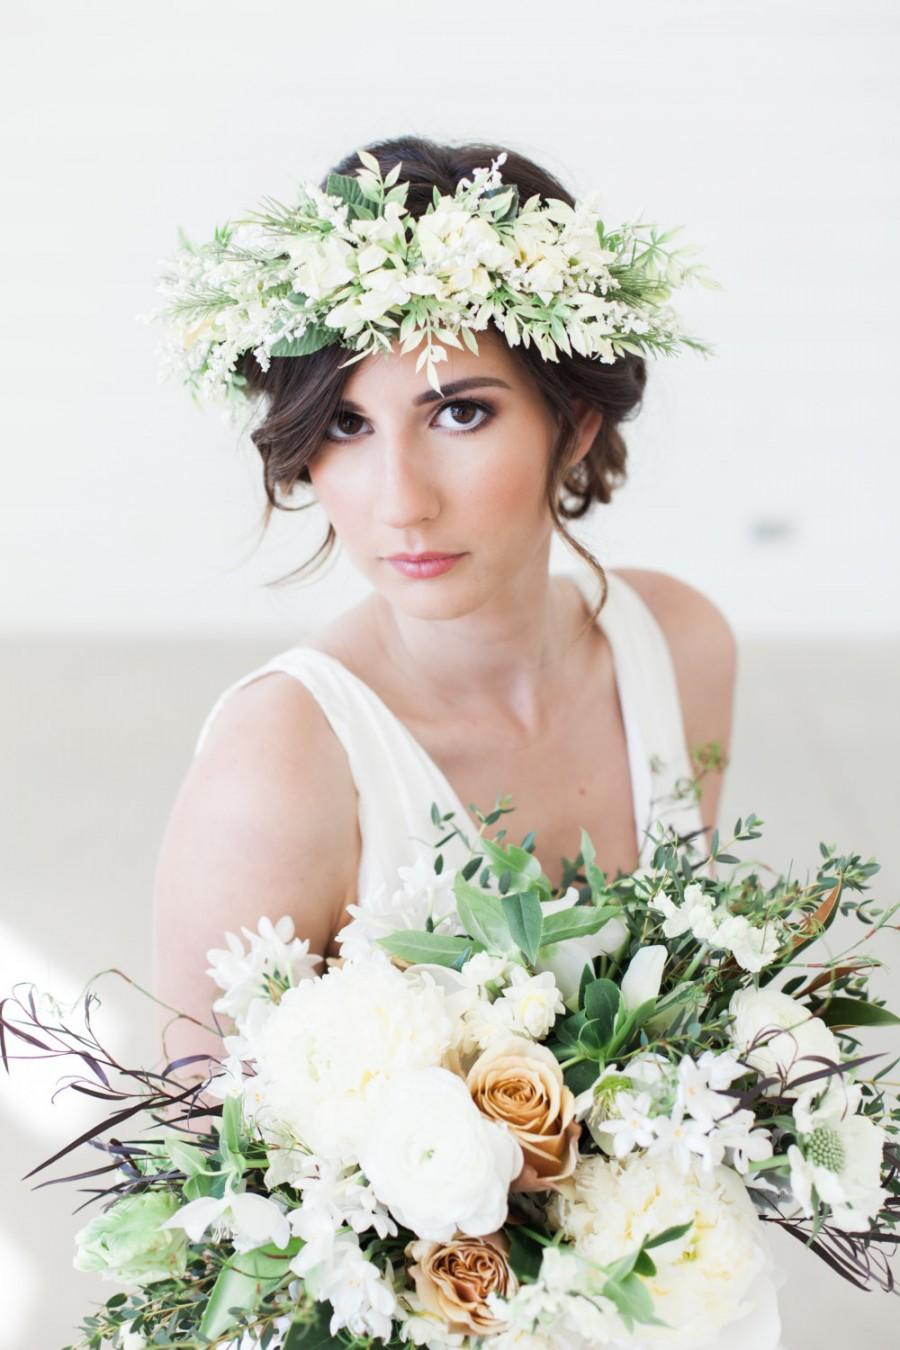 Bridal flower wreath ivory flower crown bridal hair crown bridal flower wreath ivory flower crown bridal hair crown floral hair wreath flower tiara flower crown headband flower headpiece dhlflorist Images